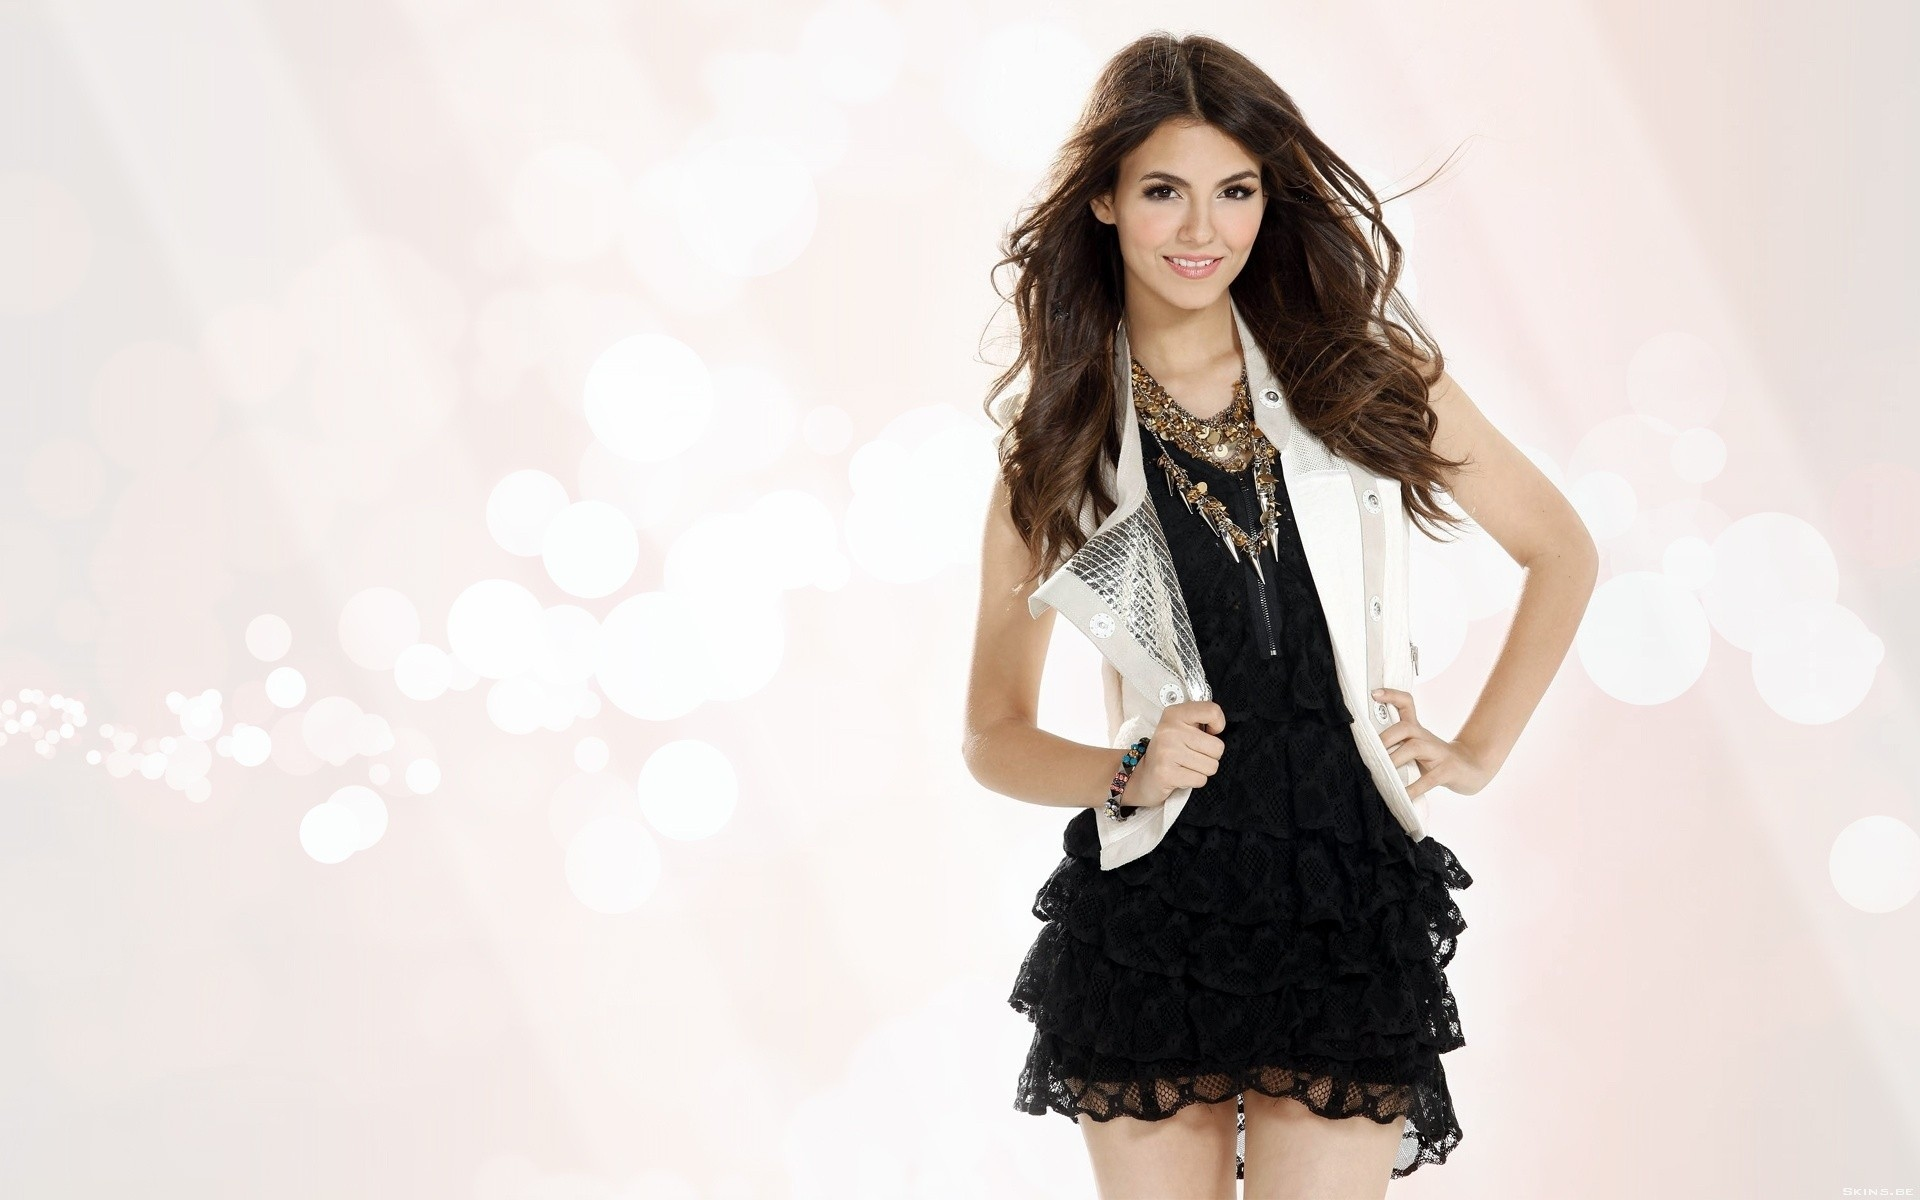 Beauty Victoria Justice Wallpaper PC